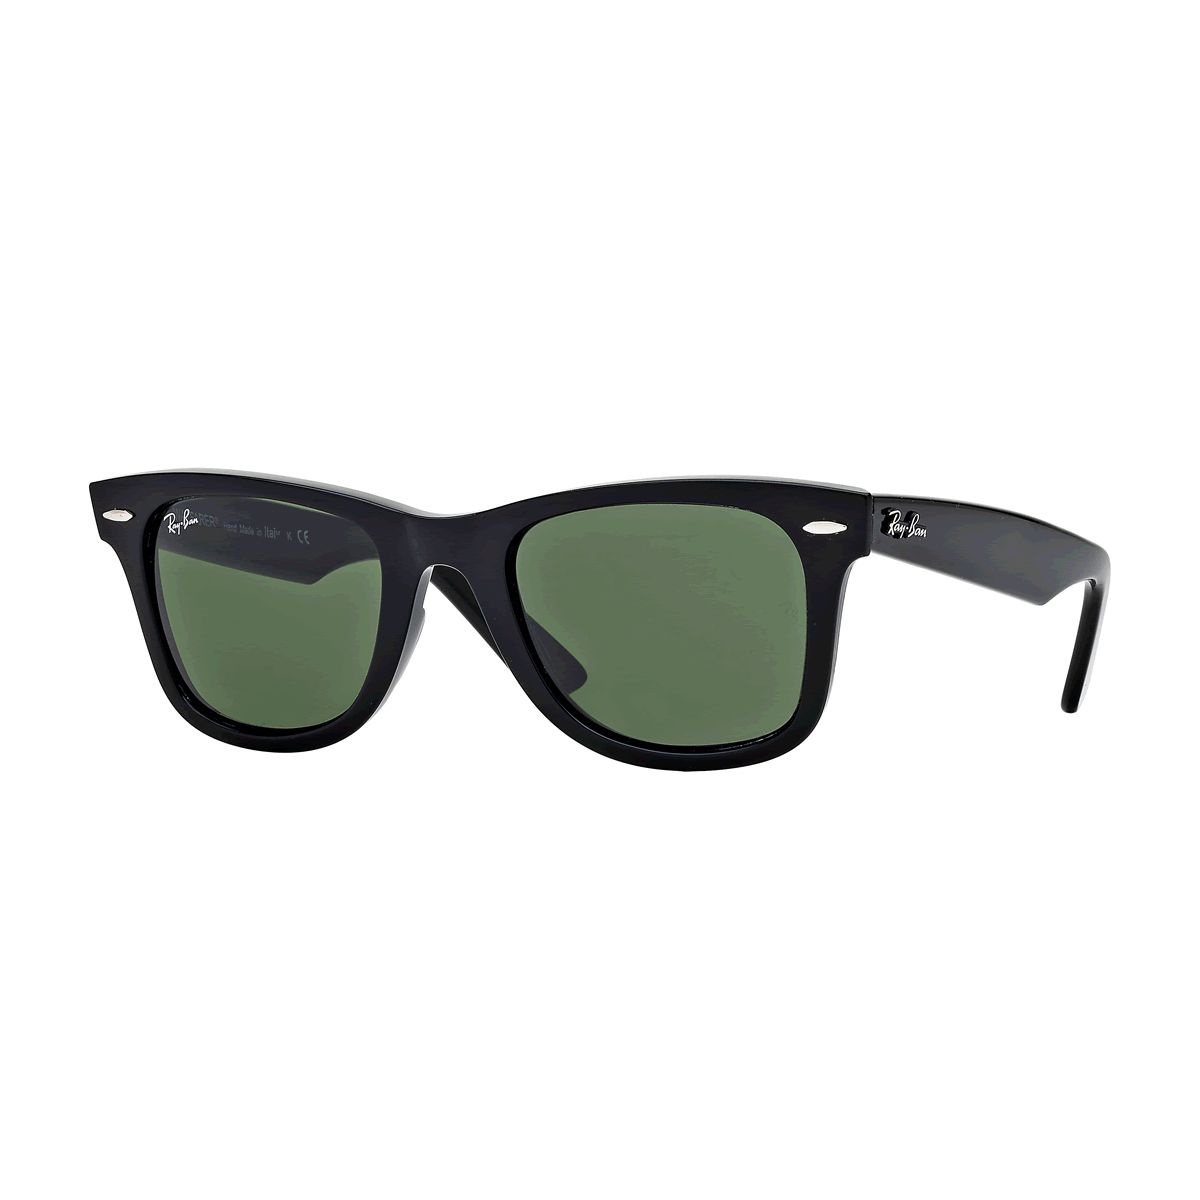 96e2c14ece Ray-Ban Sunglasses - Mens   Womens Ray-Bans - Macy s